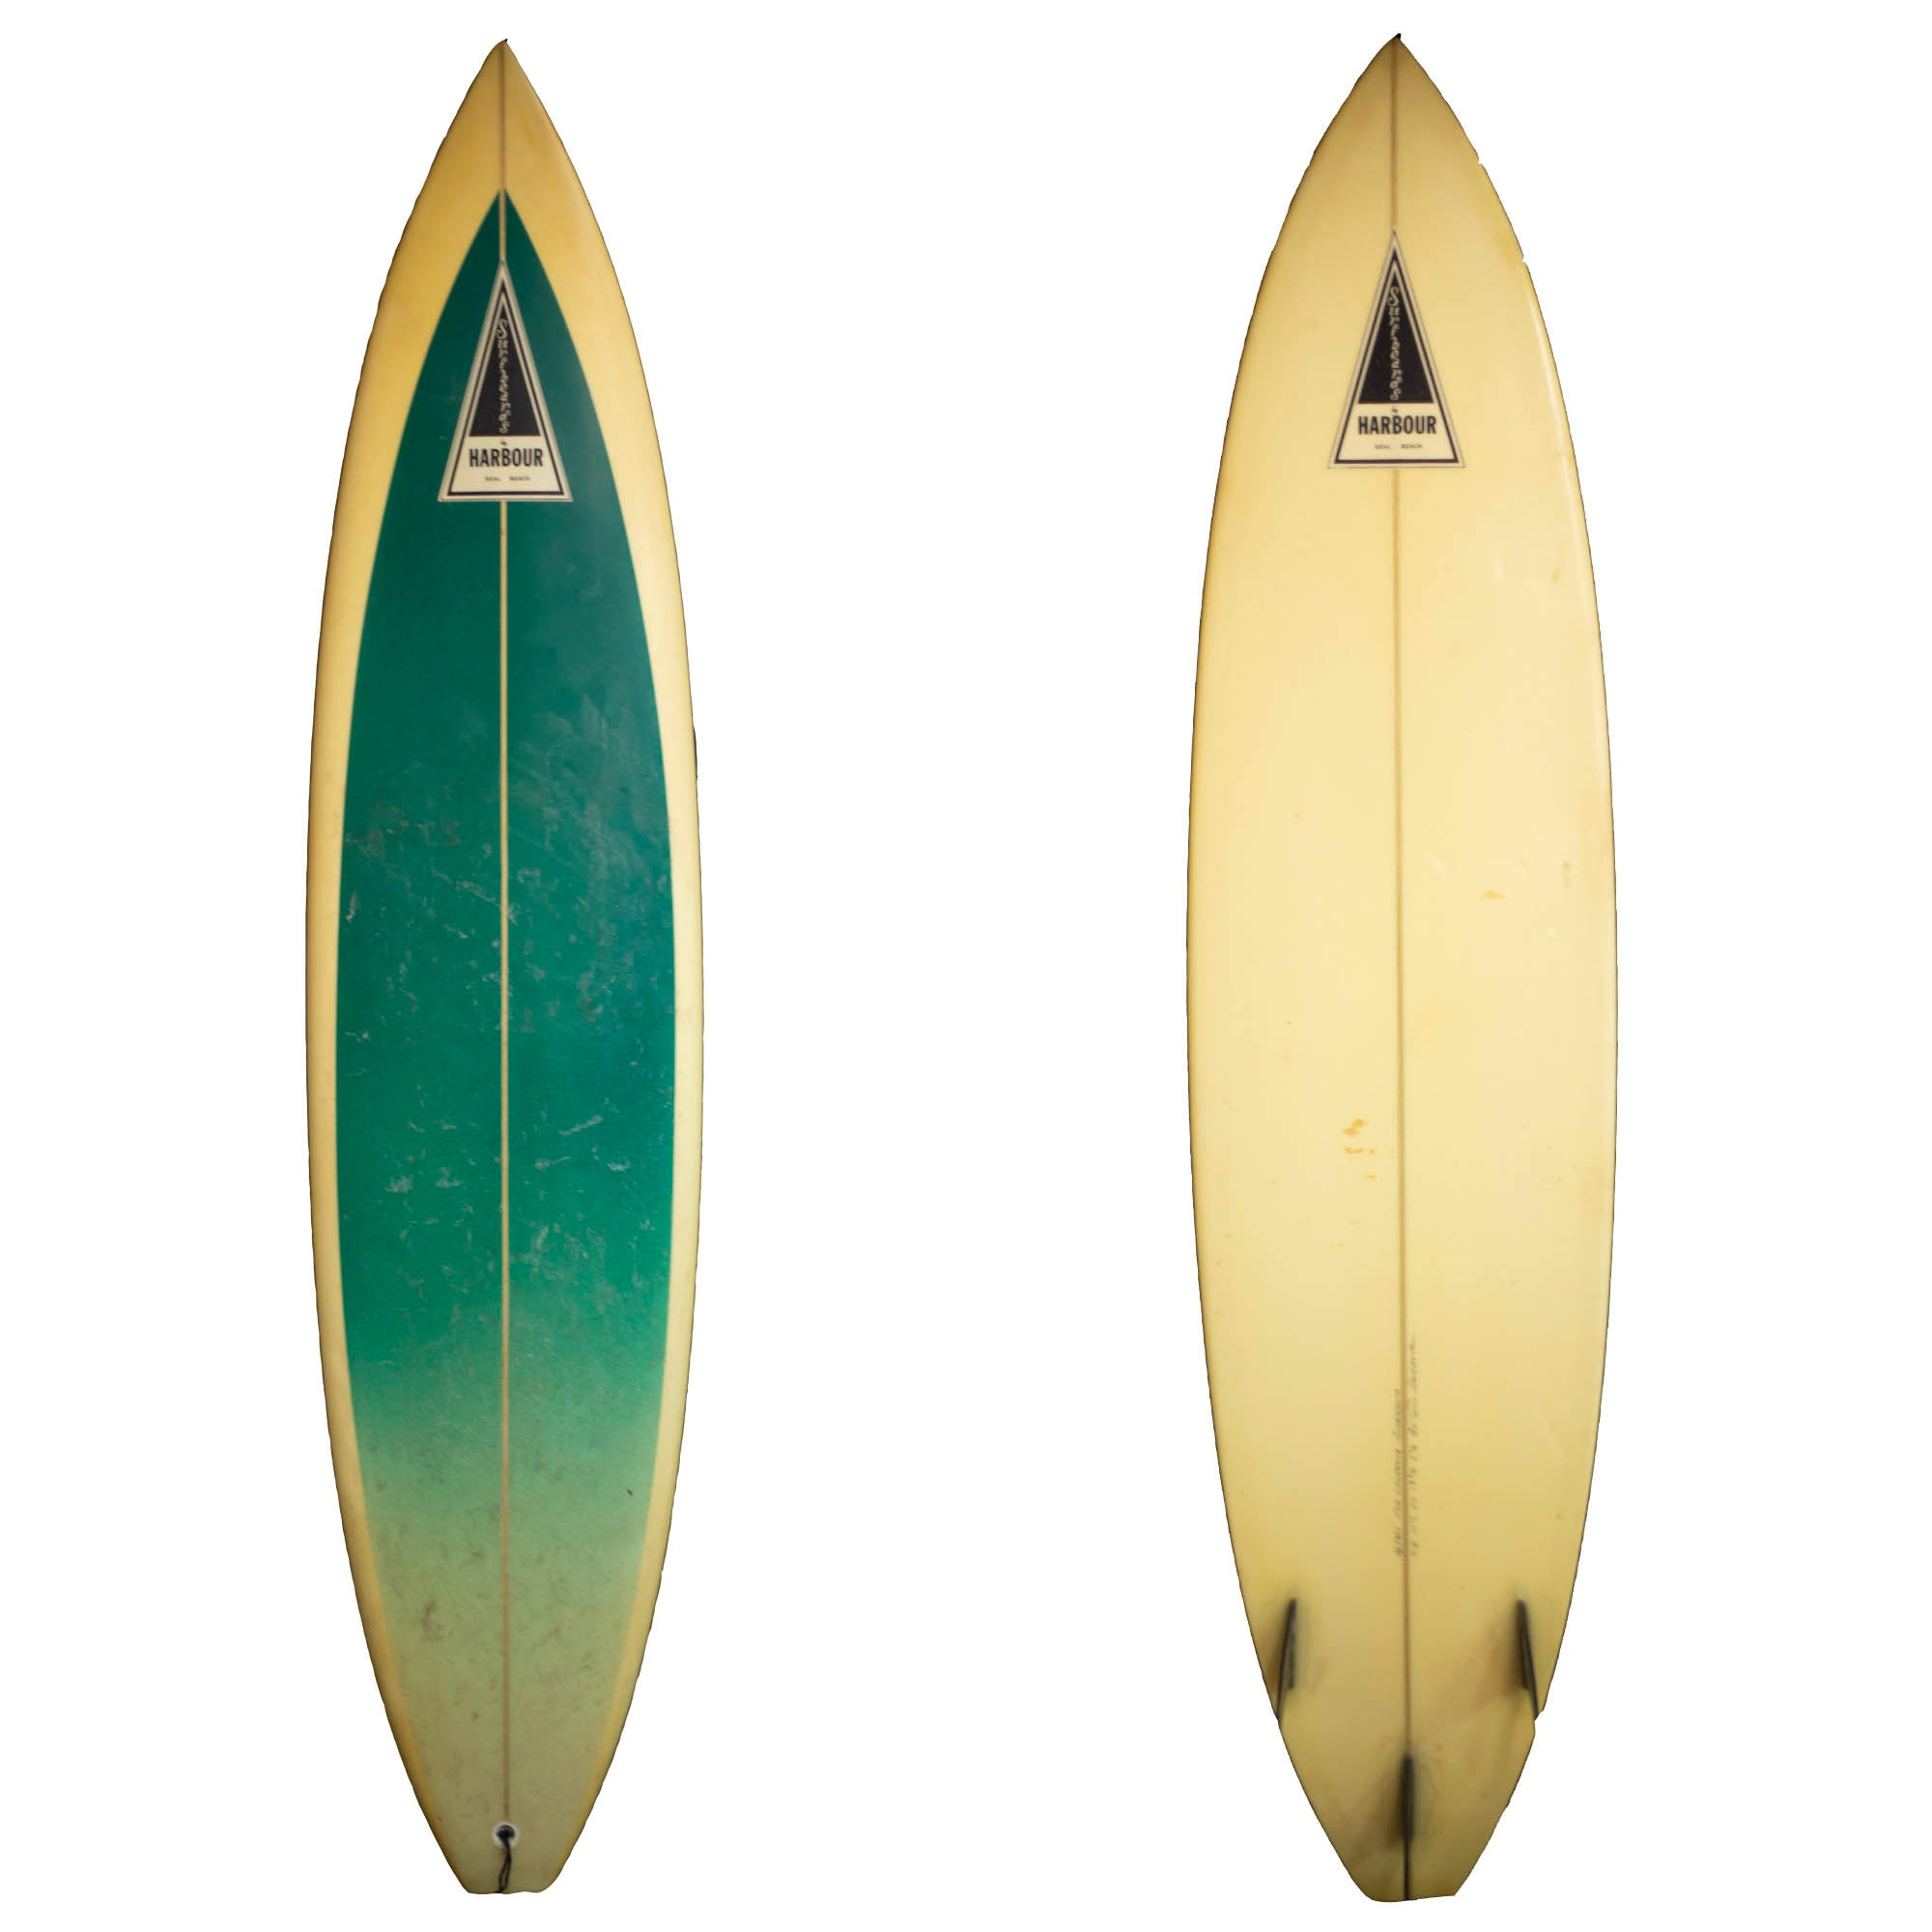 Harbour 7'8 Used Surfboard